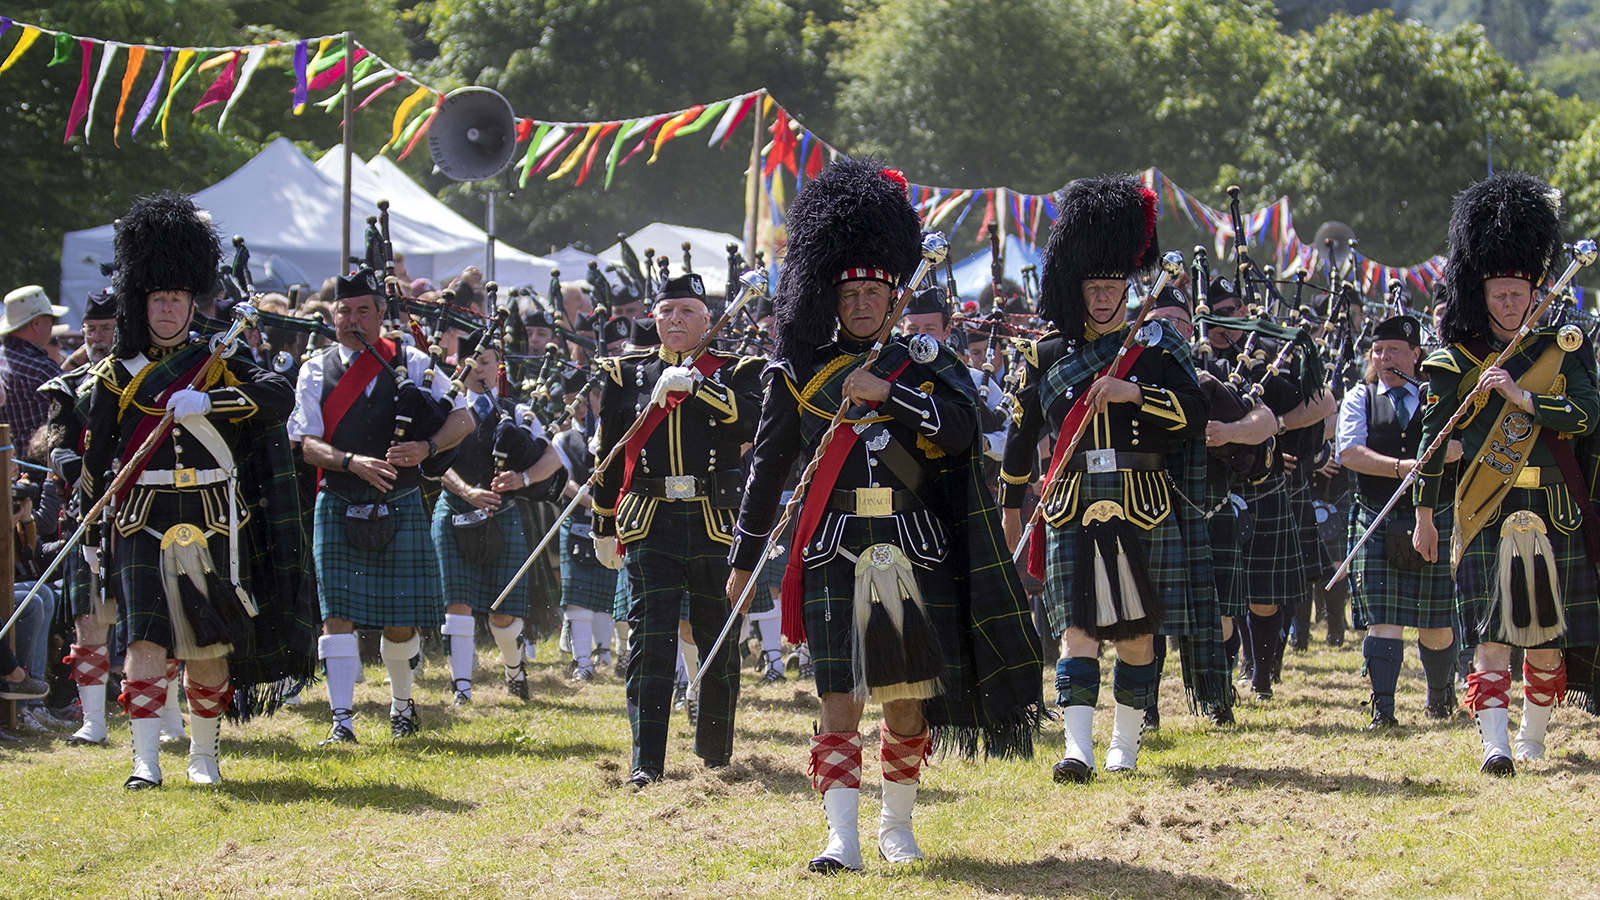 Massed pipe bands at a Highland Games event in Scotland.